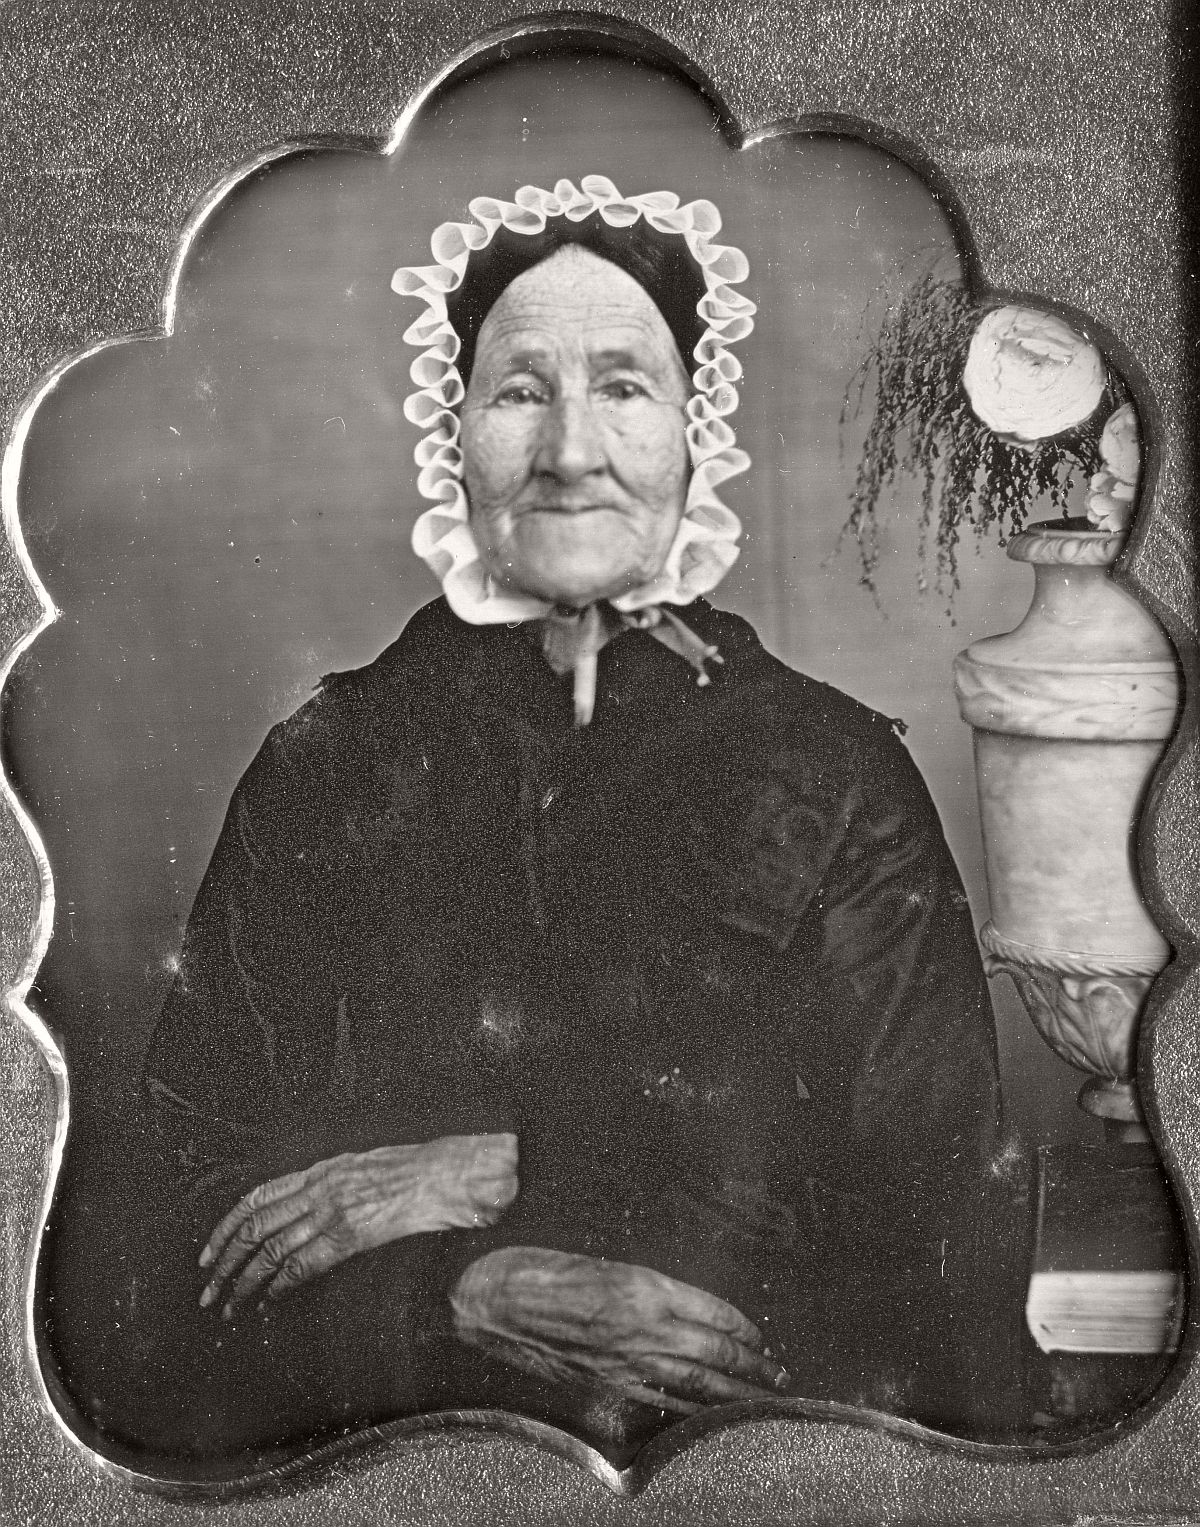 daguerreotype-portrait-people-born-in-the-late-18th-xviii-century-1700s-vintage-39